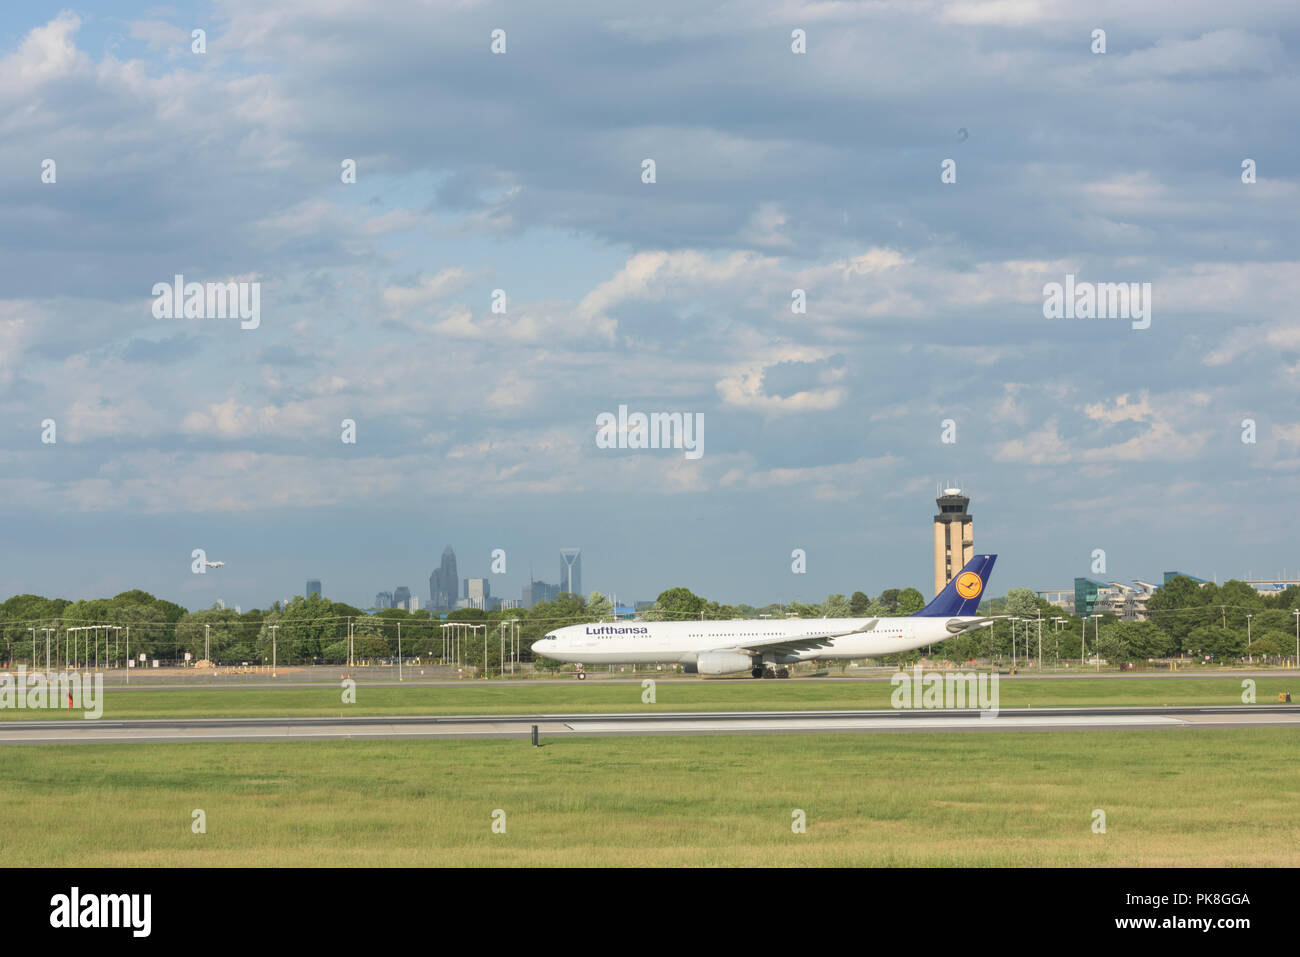 Charlotte, NC - May 14, 2017/USA - Commercial Airliner takes off at Charlotte-Douglas International Airport in Charlotte, NC - Stock Image